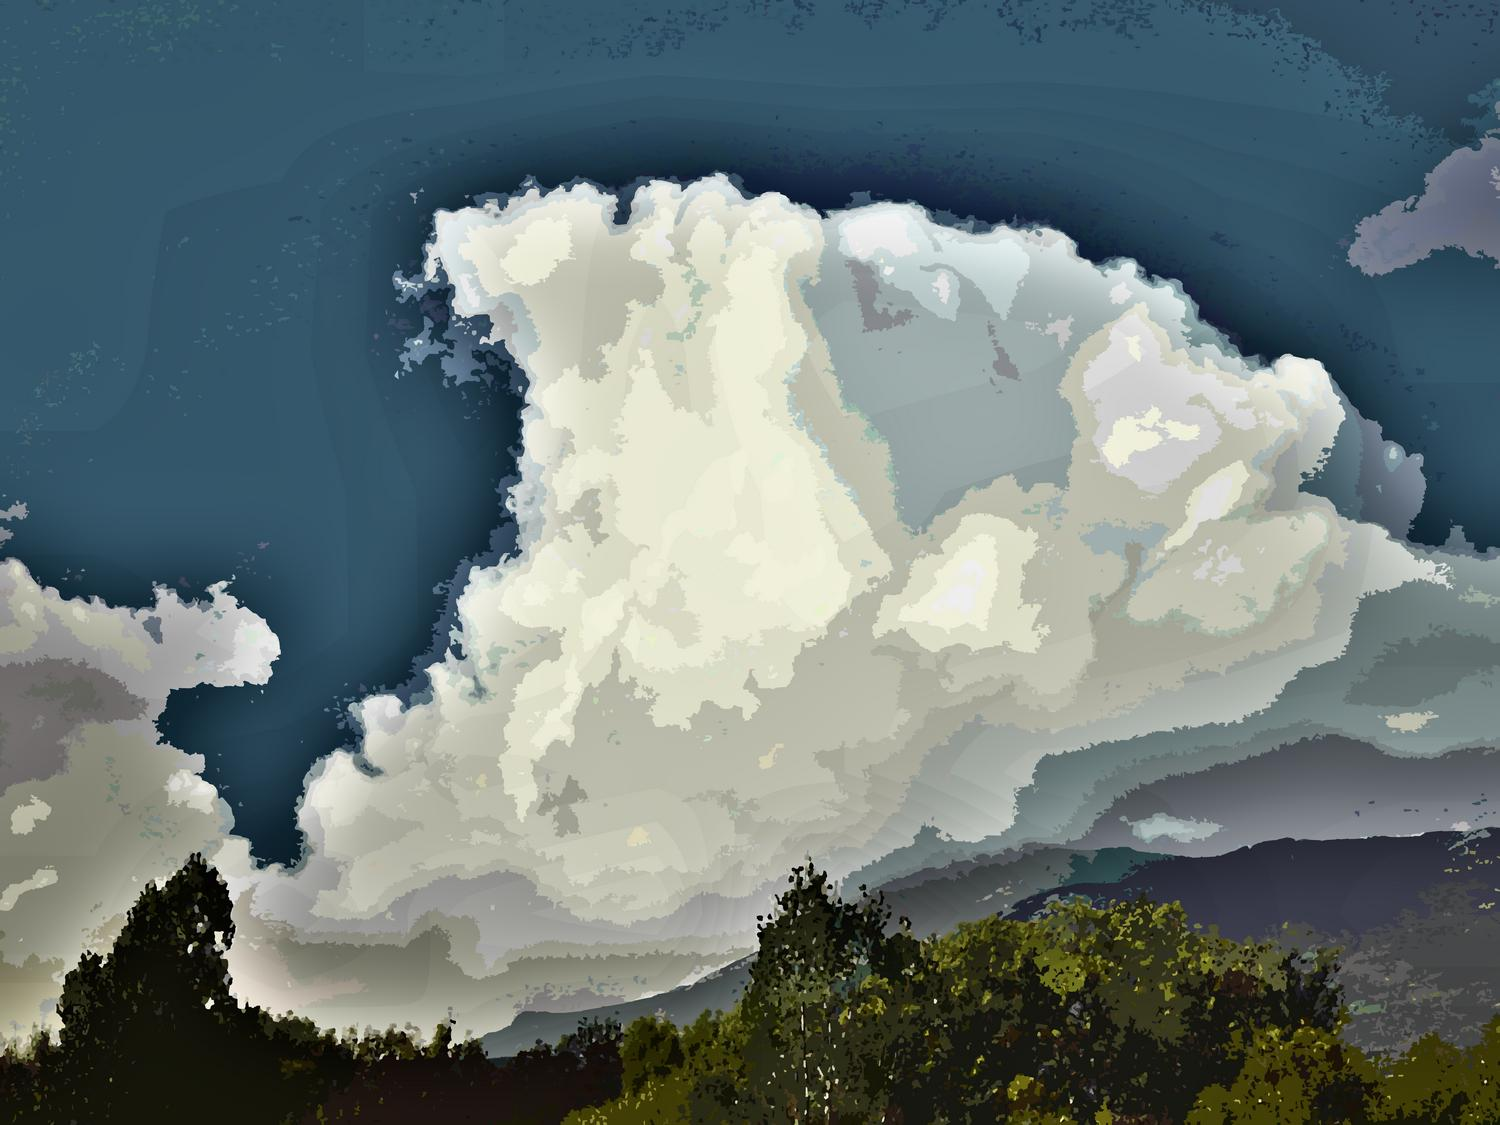 Mountains in Spain, by Tony Karp - Mountains in Spain - Techno-Impressionist Museum - Techno-Impressionism - art - beautiful - photo photography picture - by Tony Karp